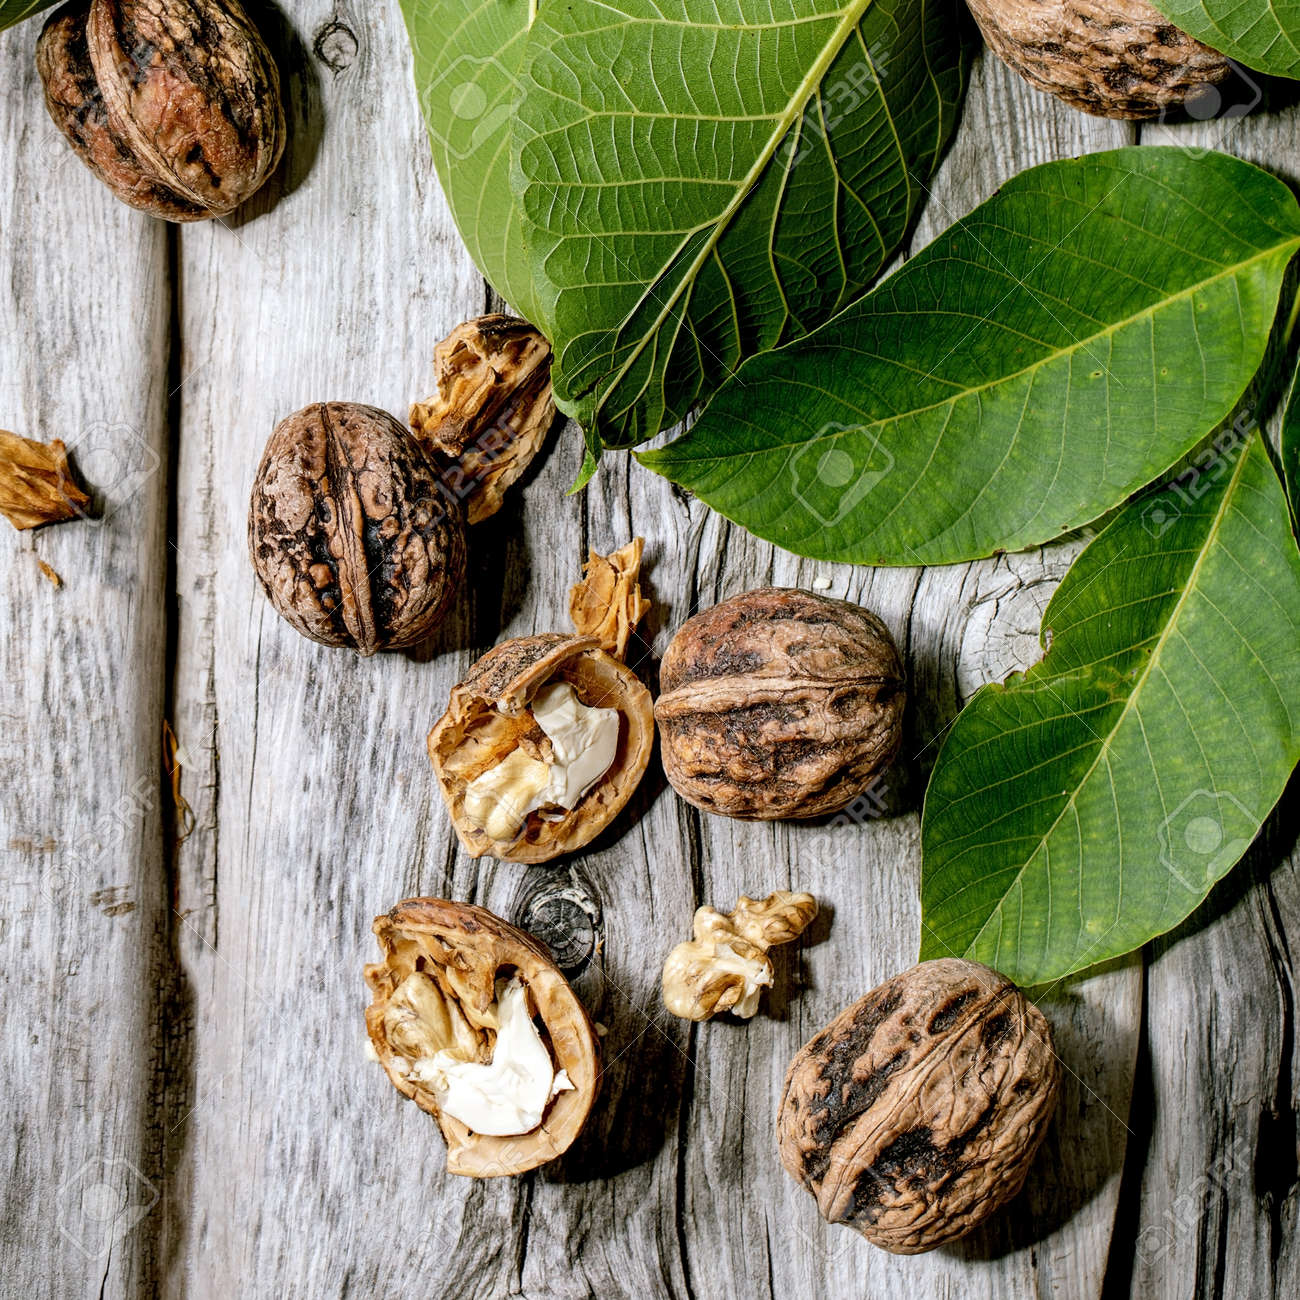 Organic walnuts, whole and broken, with green leaves of walnut tree over old wooden background. Flat lay, space. Square - 173054181